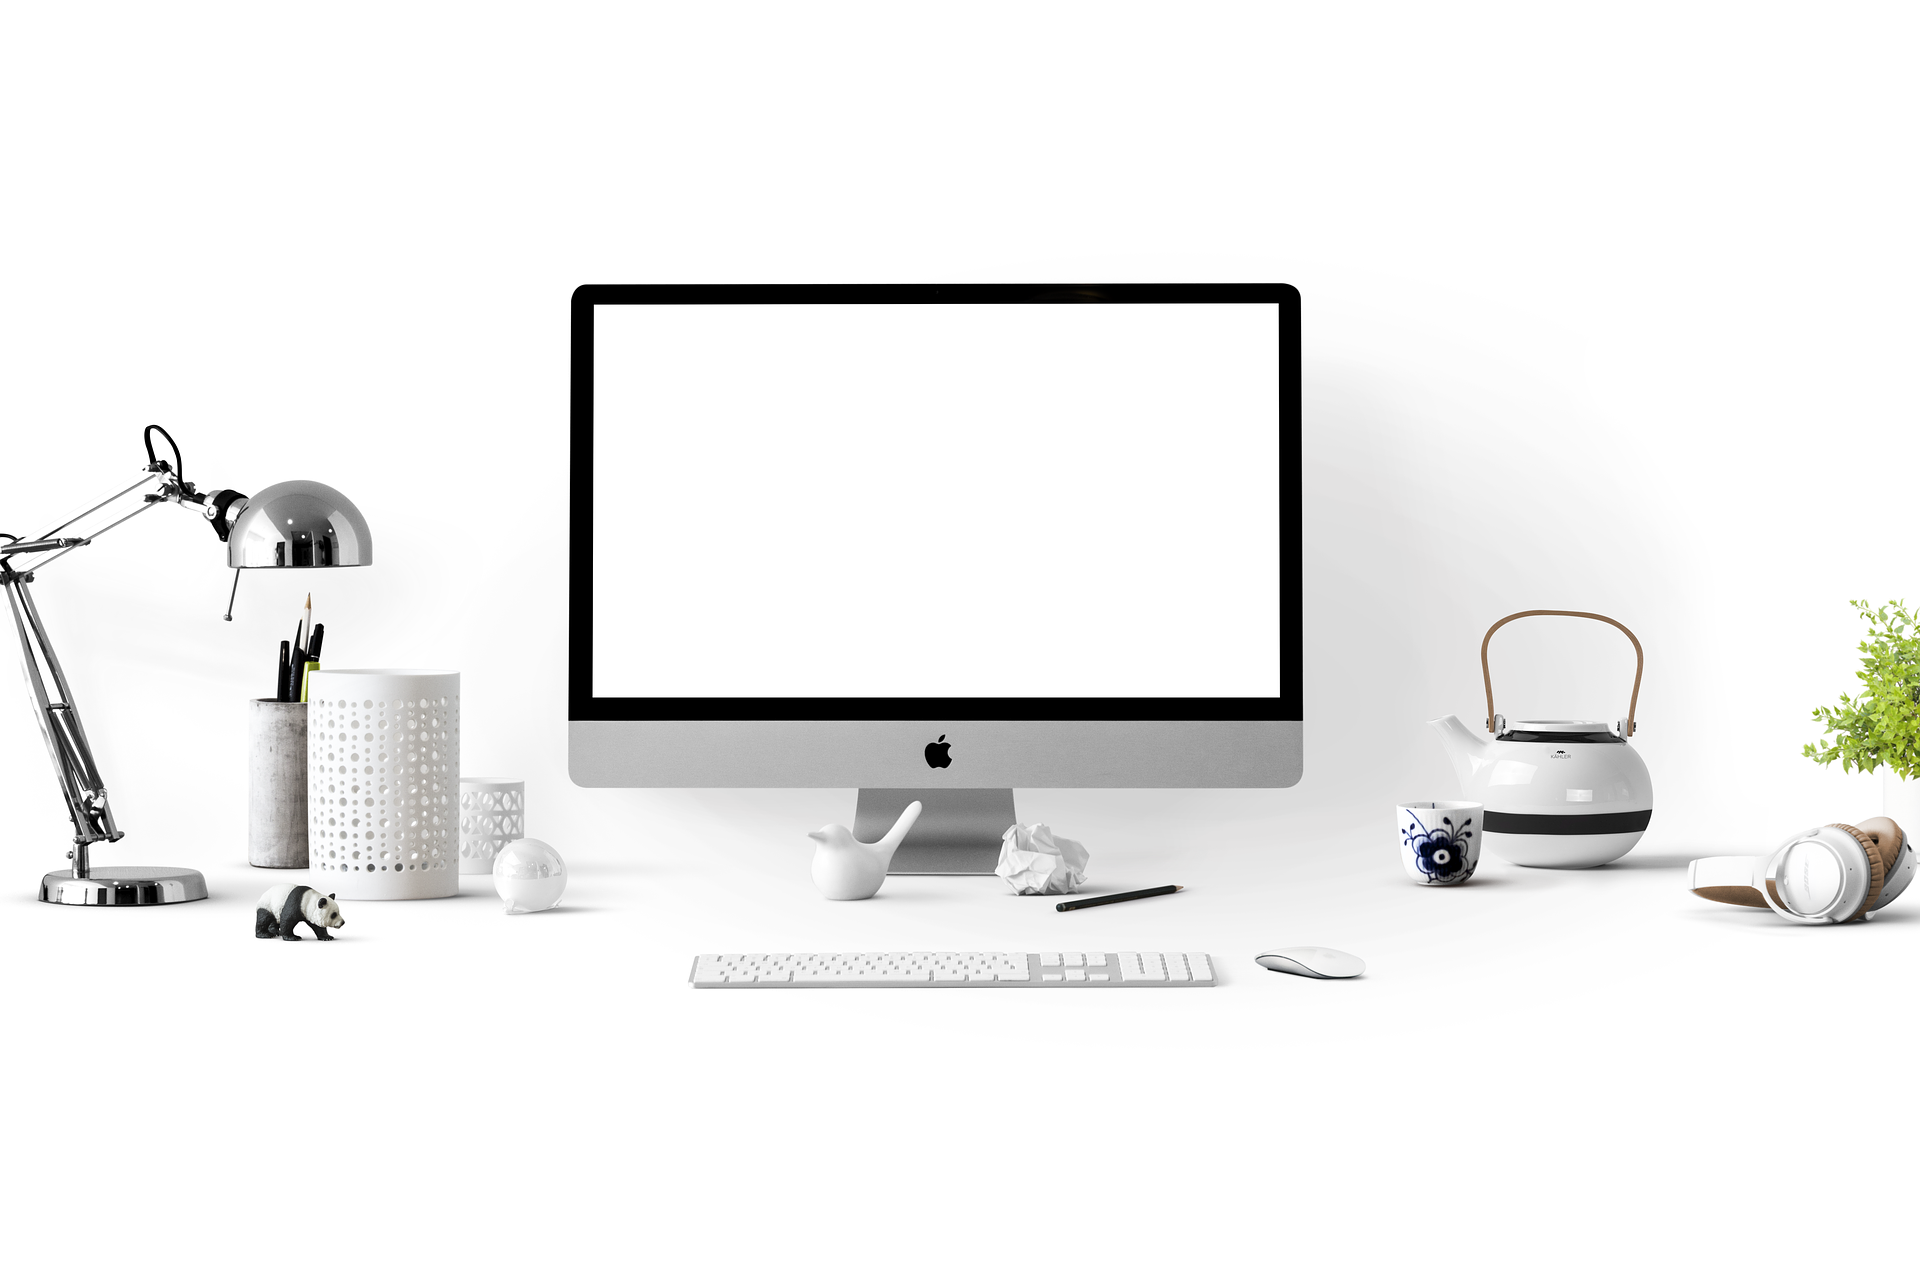 Apple desktop computer in the centre of a workspace. On the left is a silver anglepoise lamp and a pot of pens to the riht os a japanese teapot.